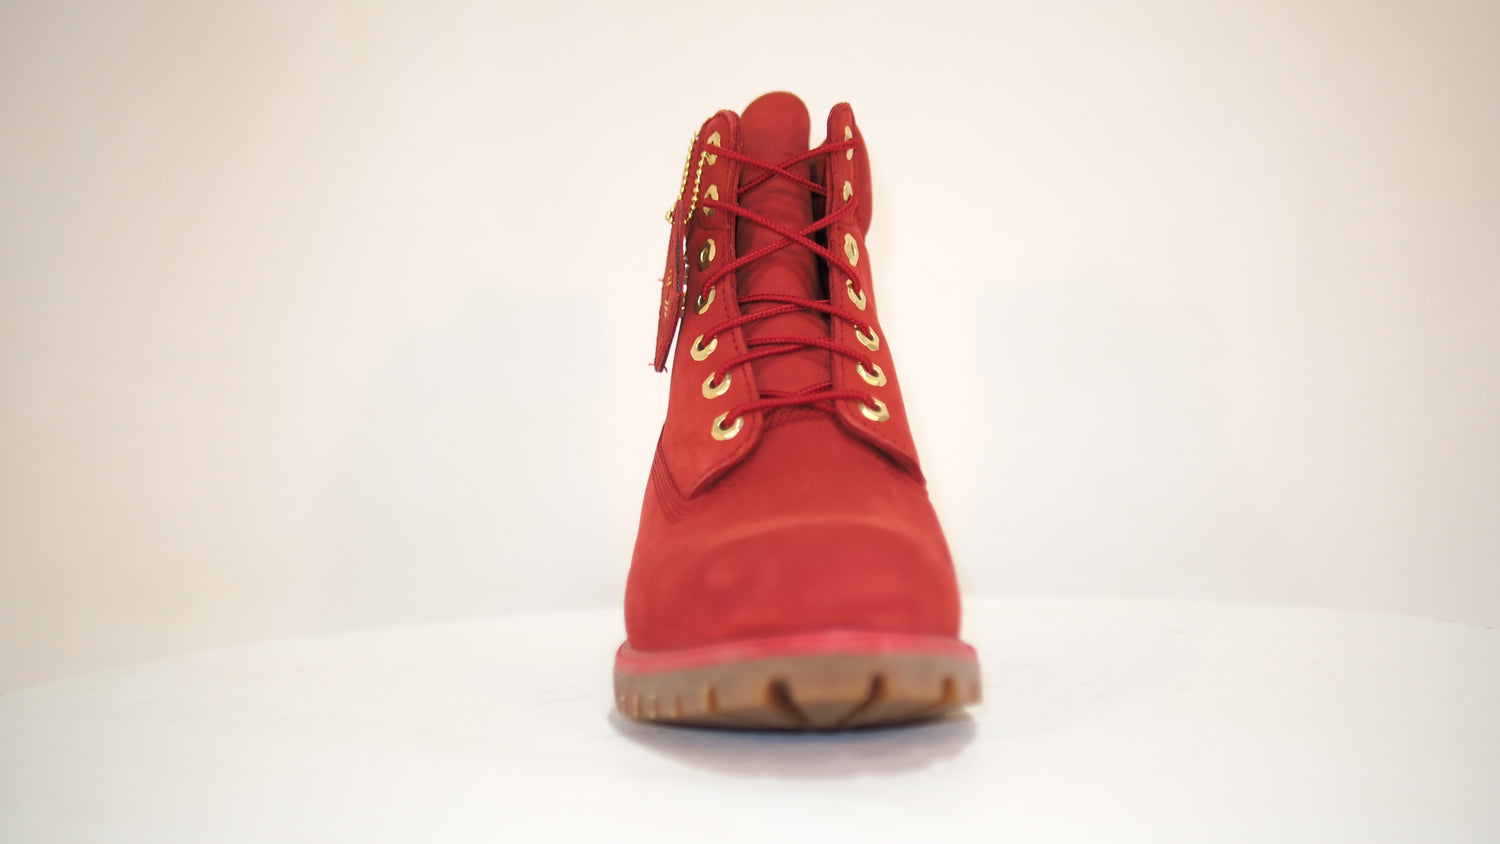 6 Inch Premium Waterproof Boots - Limited Release - Dream Town Shoes